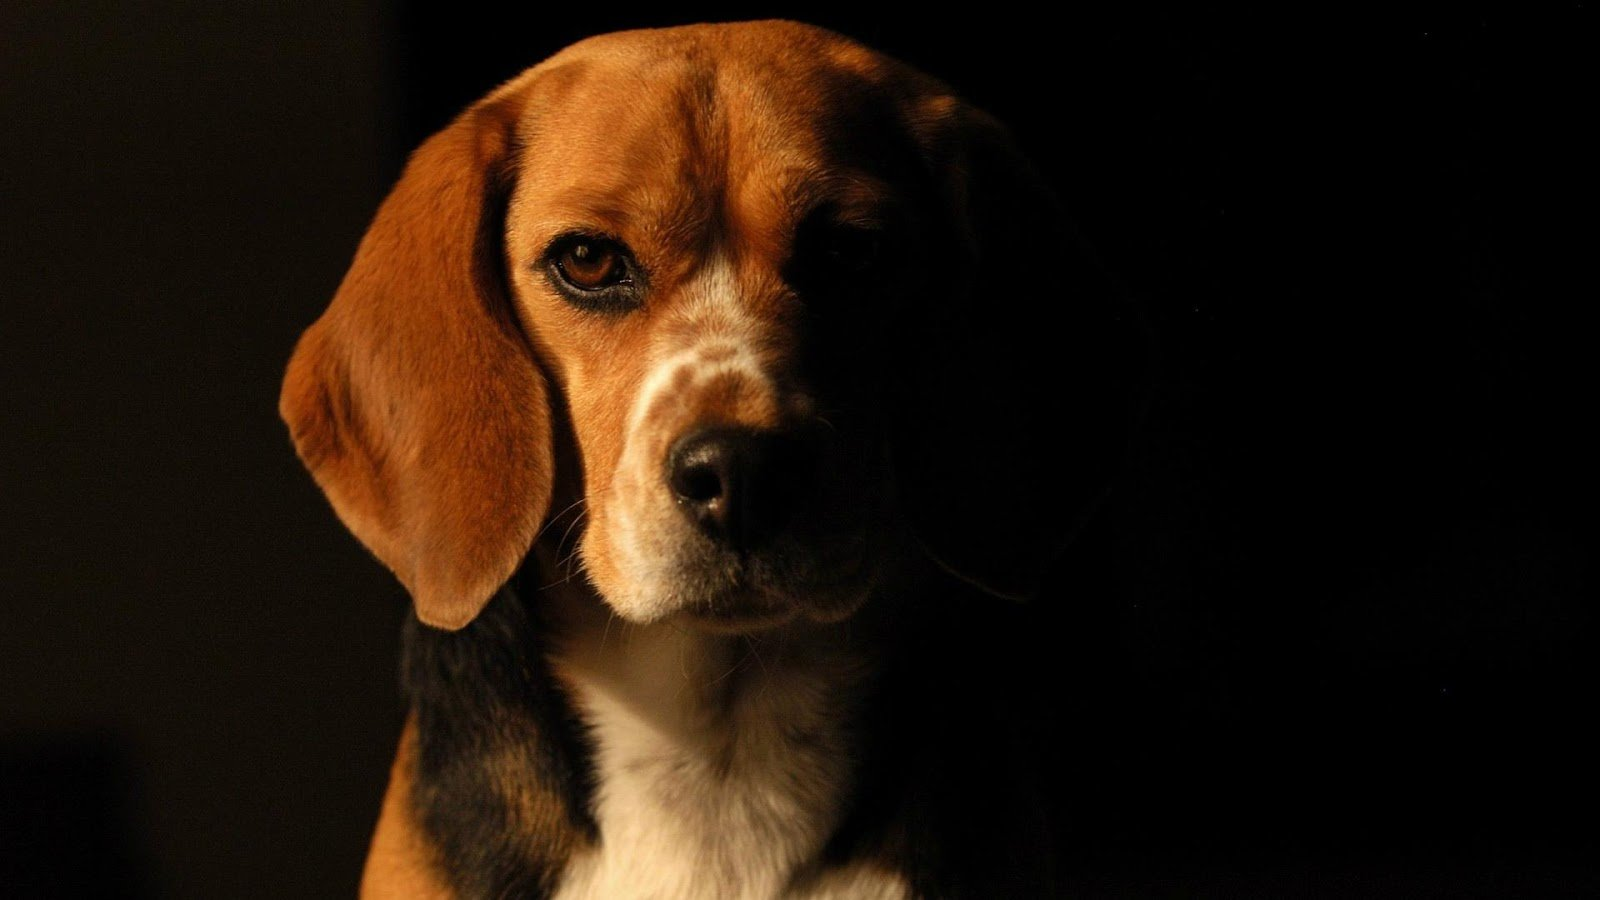 Beagle Dog HD Live Wallpaper   Android Apps on Google Play 1600x900